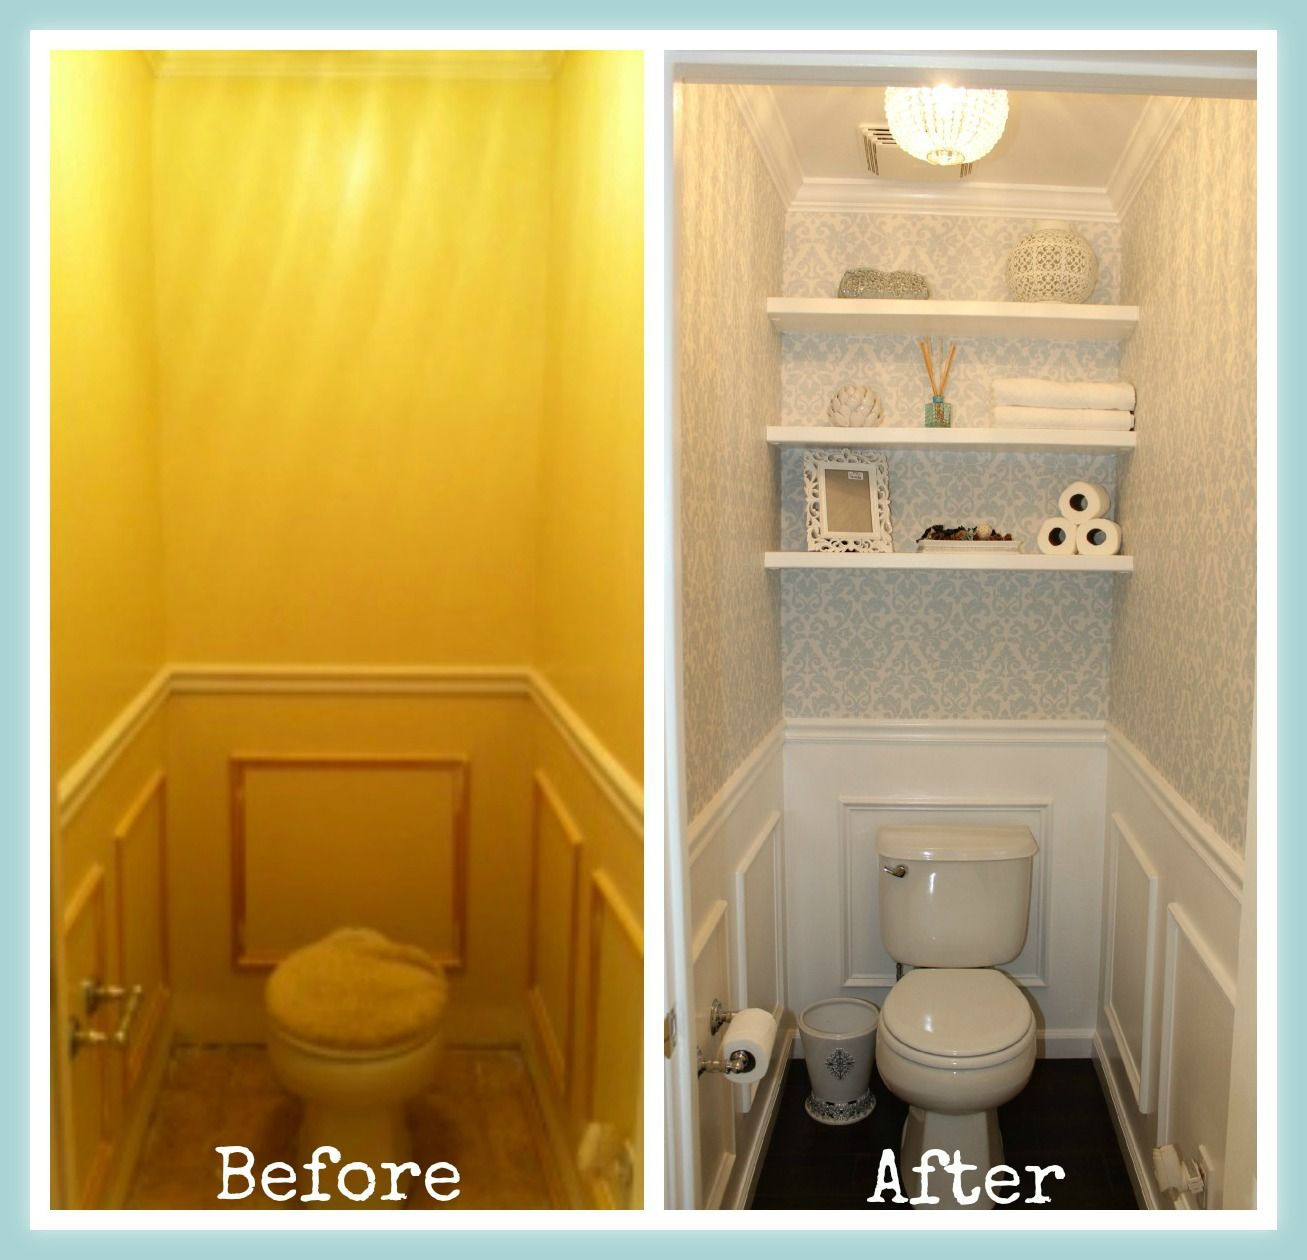 6 Elegant Bathroom Ideas For Compact Spaces: A Small Bathroom Space Went From Dingy To Elegant With A